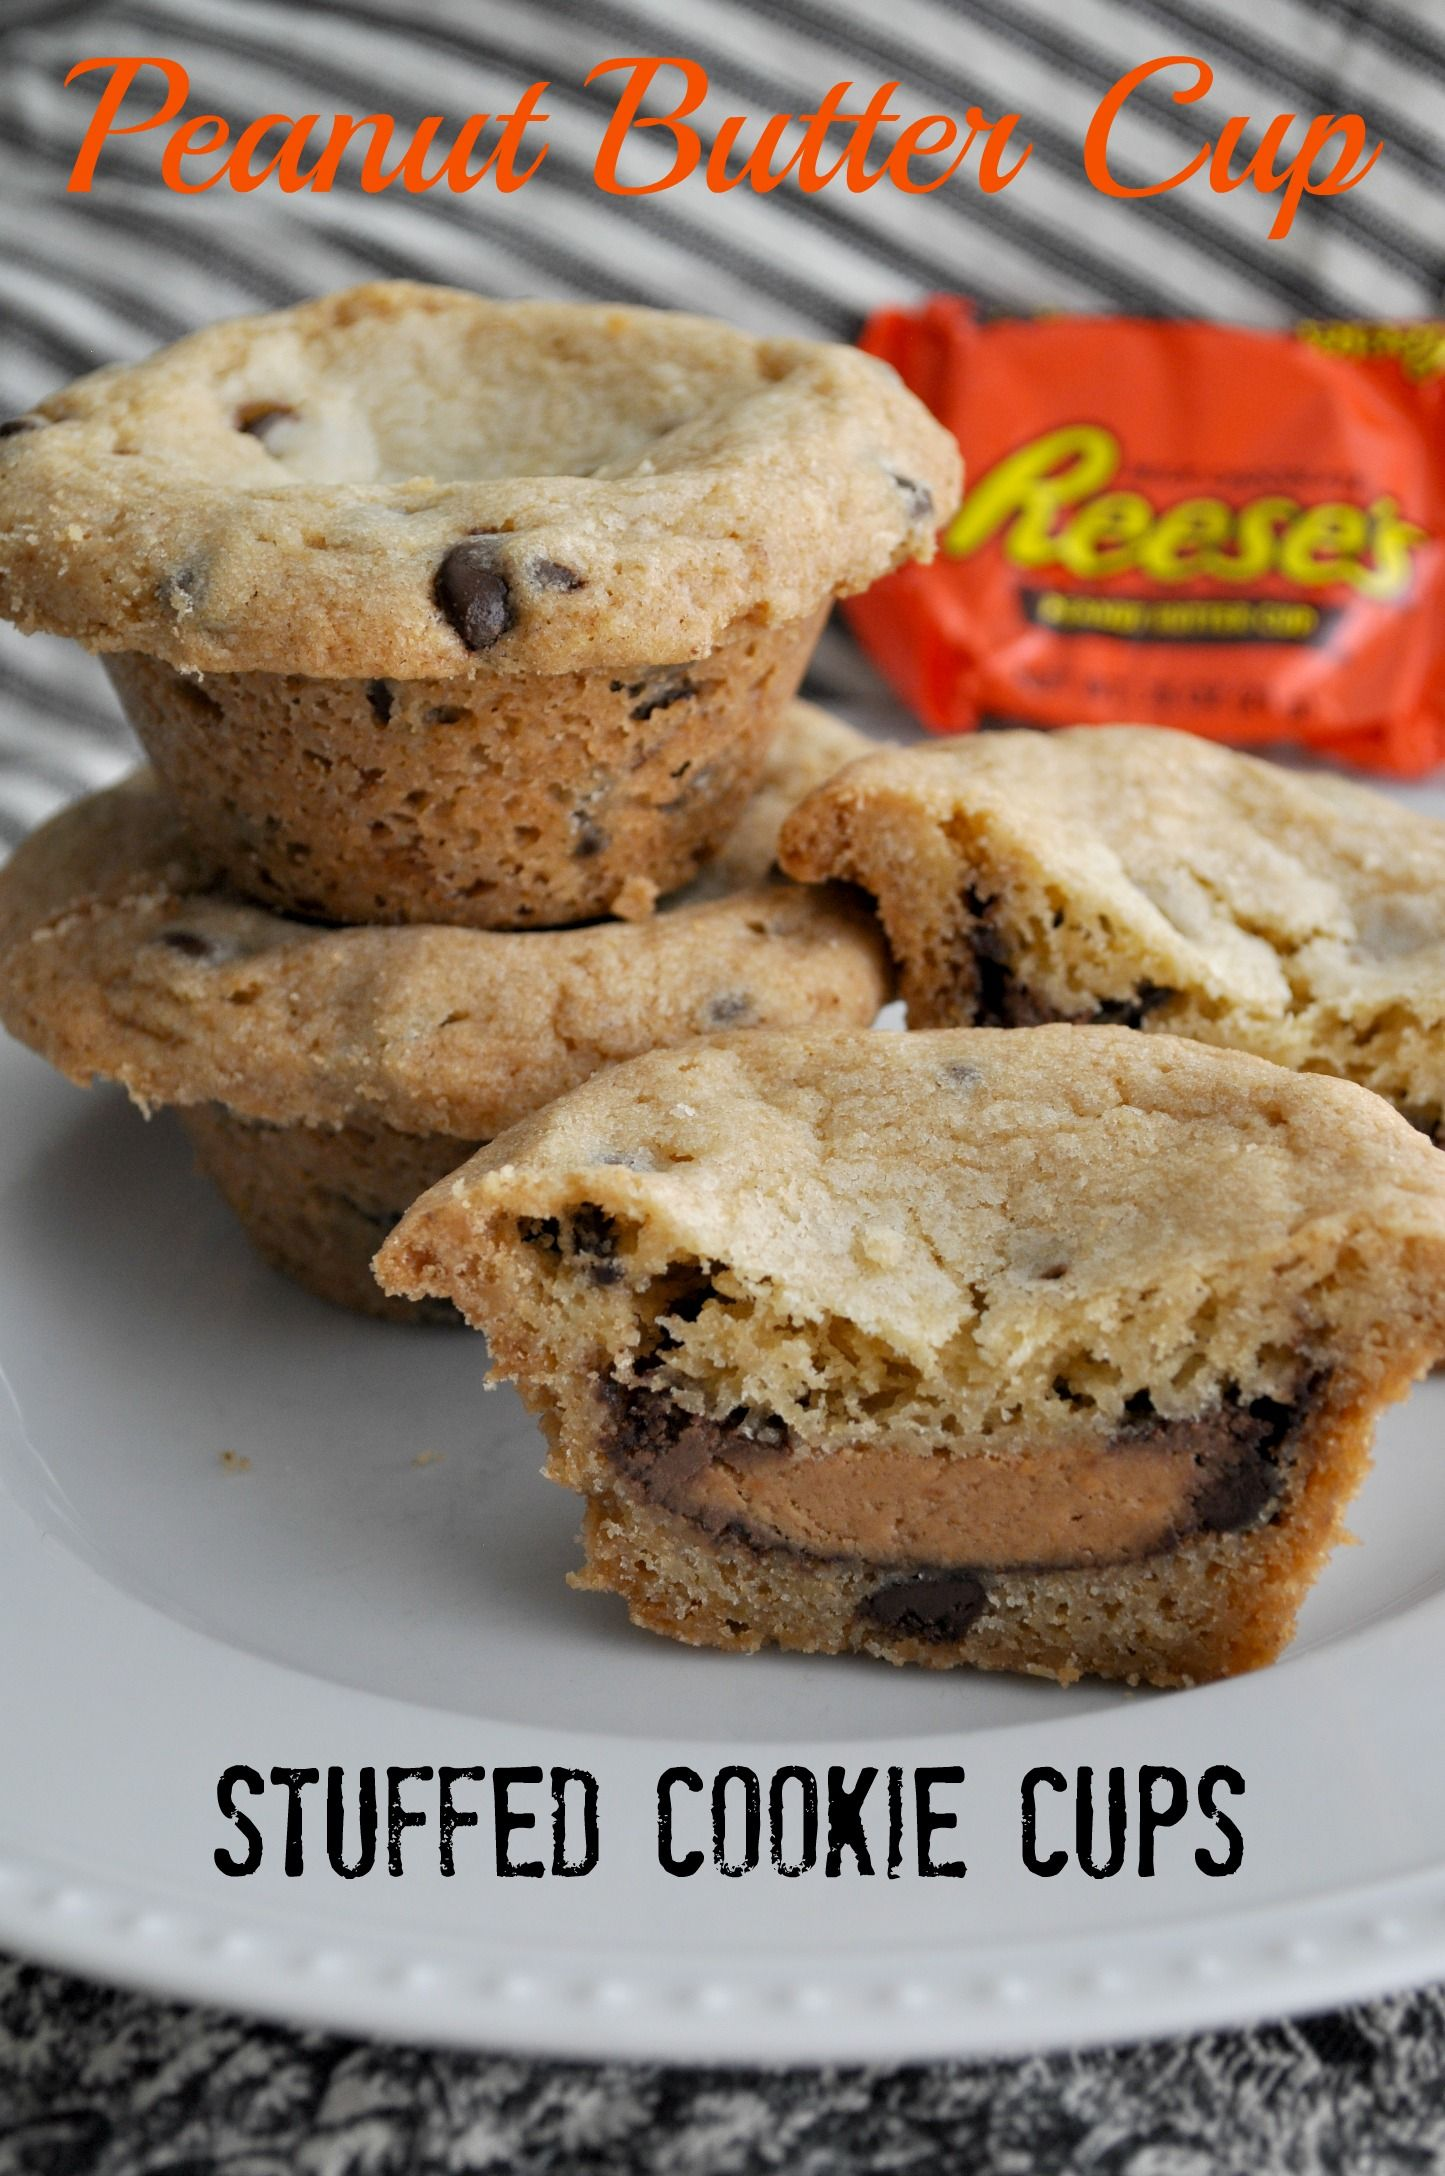 peanut butter cup stuffed cookies - decadence beyond BElief!